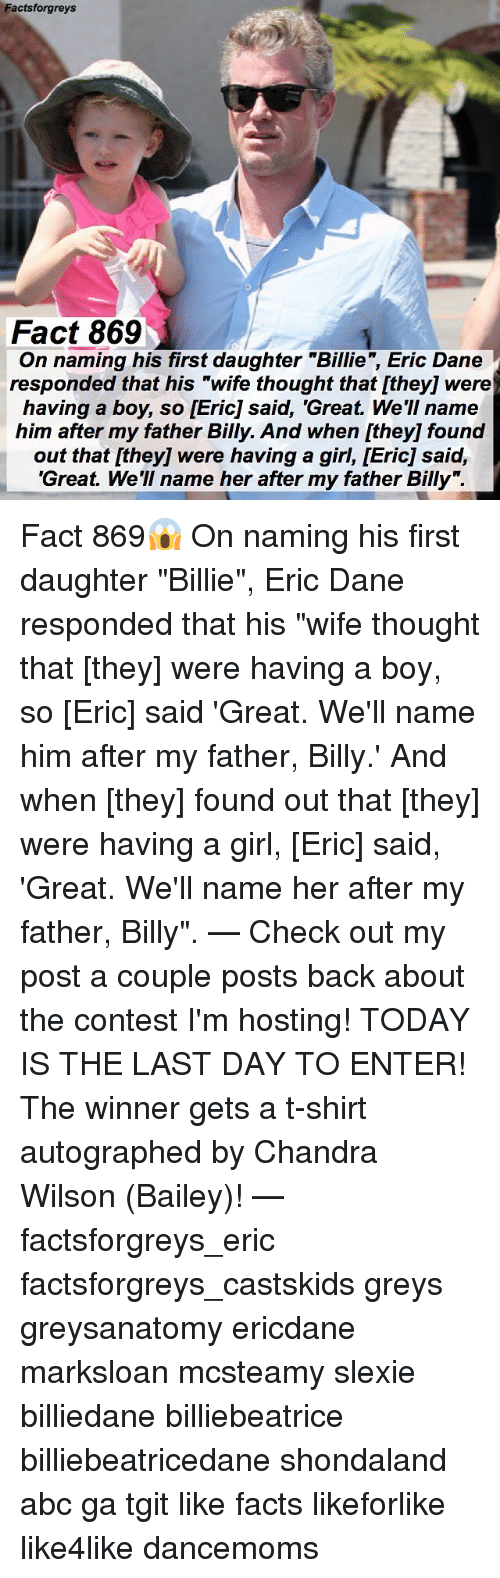 """autographed: Factsforgreys  Fact 869  g his first daughter """"Billie, Eric Dane  On naming his first daughter """"Billie"""", Eric Dane  responded that his """"wife thought that [they] were  having a boy, so [Eric] said, 'Great. We'II name  him after my father Billy. And when [they] found  out that [they] were having a girl, [Eric] said,  'Great. We'll name her after my father Billy"""". Fact 869😱 On naming his first daughter """"Billie"""", Eric Dane responded that his """"wife thought that [they] were having a boy, so [Eric] said 'Great. We'll name him after my father, Billy.' And when [they] found out that [they] were having a girl, [Eric] said, 'Great. We'll name her after my father, Billy"""". — Check out my post a couple posts back about the contest I'm hosting! TODAY IS THE LAST DAY TO ENTER! The winner gets a t-shirt autographed by Chandra Wilson (Bailey)! — factsforgreys_eric factsforgreys_castskids greys greysanatomy ericdane marksloan mcsteamy slexie billiedane billiebeatrice billiebeatricedane shondaland abc ga tgit like facts likeforlike like4like dancemoms"""